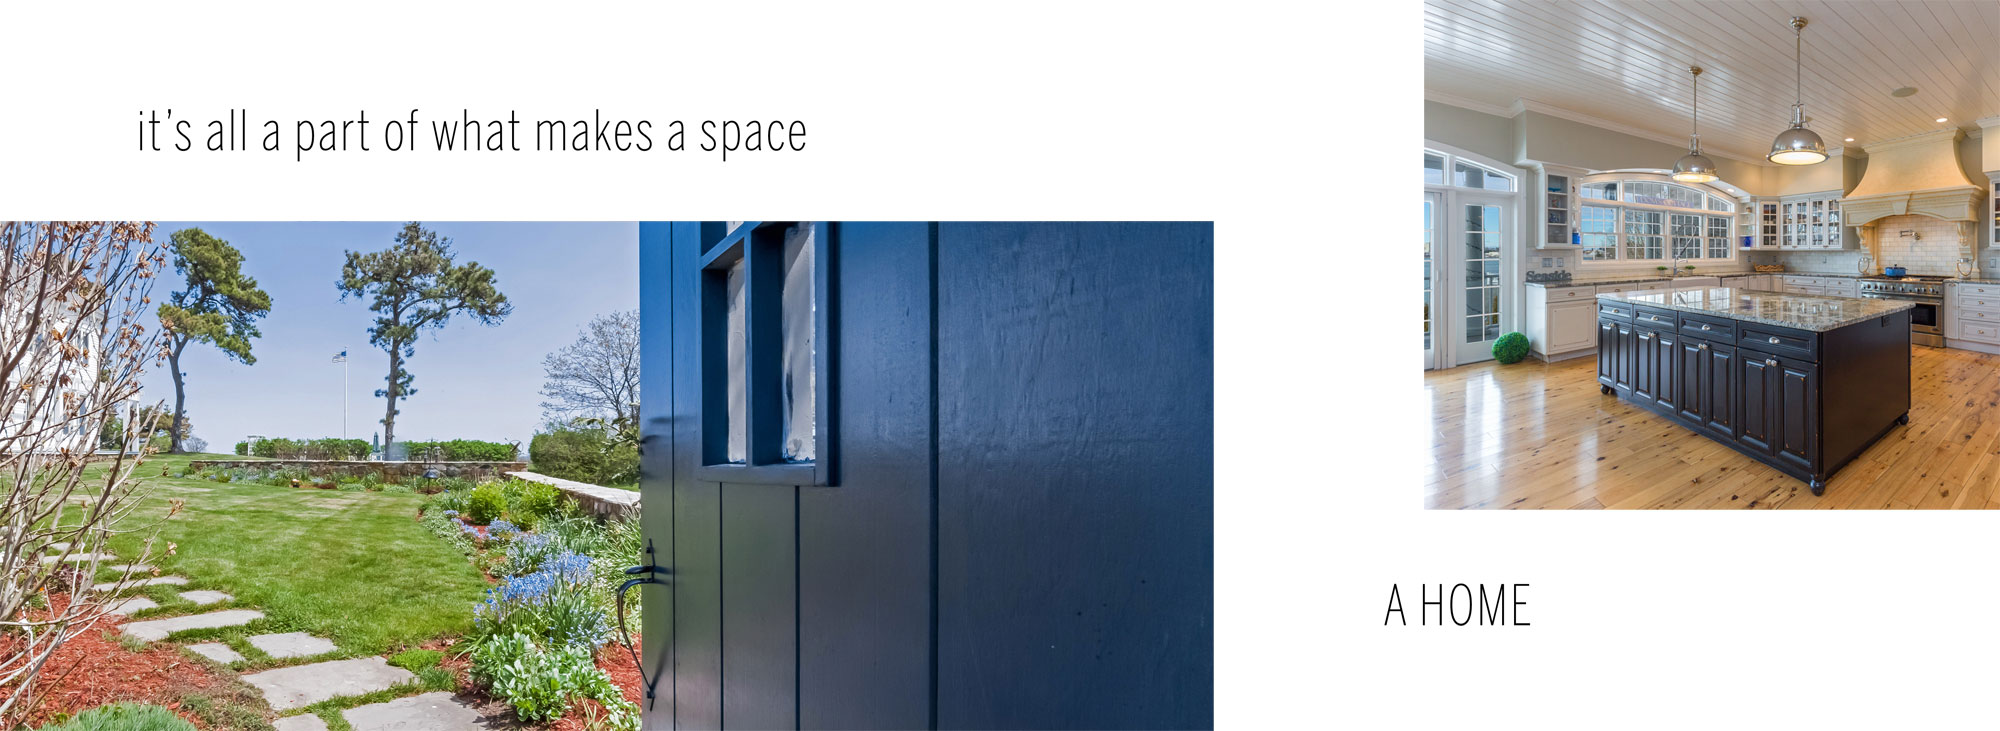 it's all part of what makes a space, a home